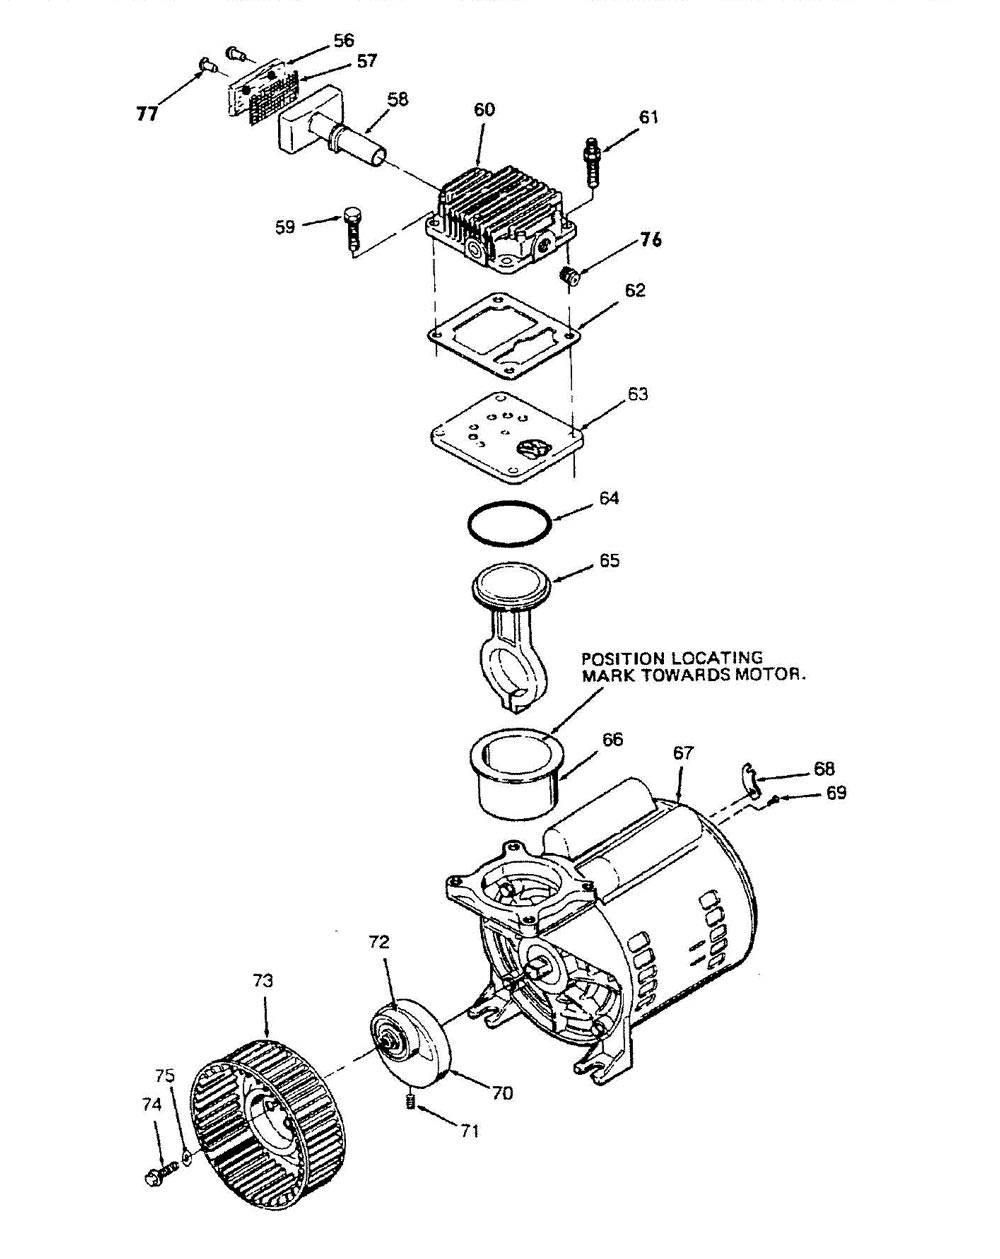 Oil-Free Direct-Drive Pump Parts